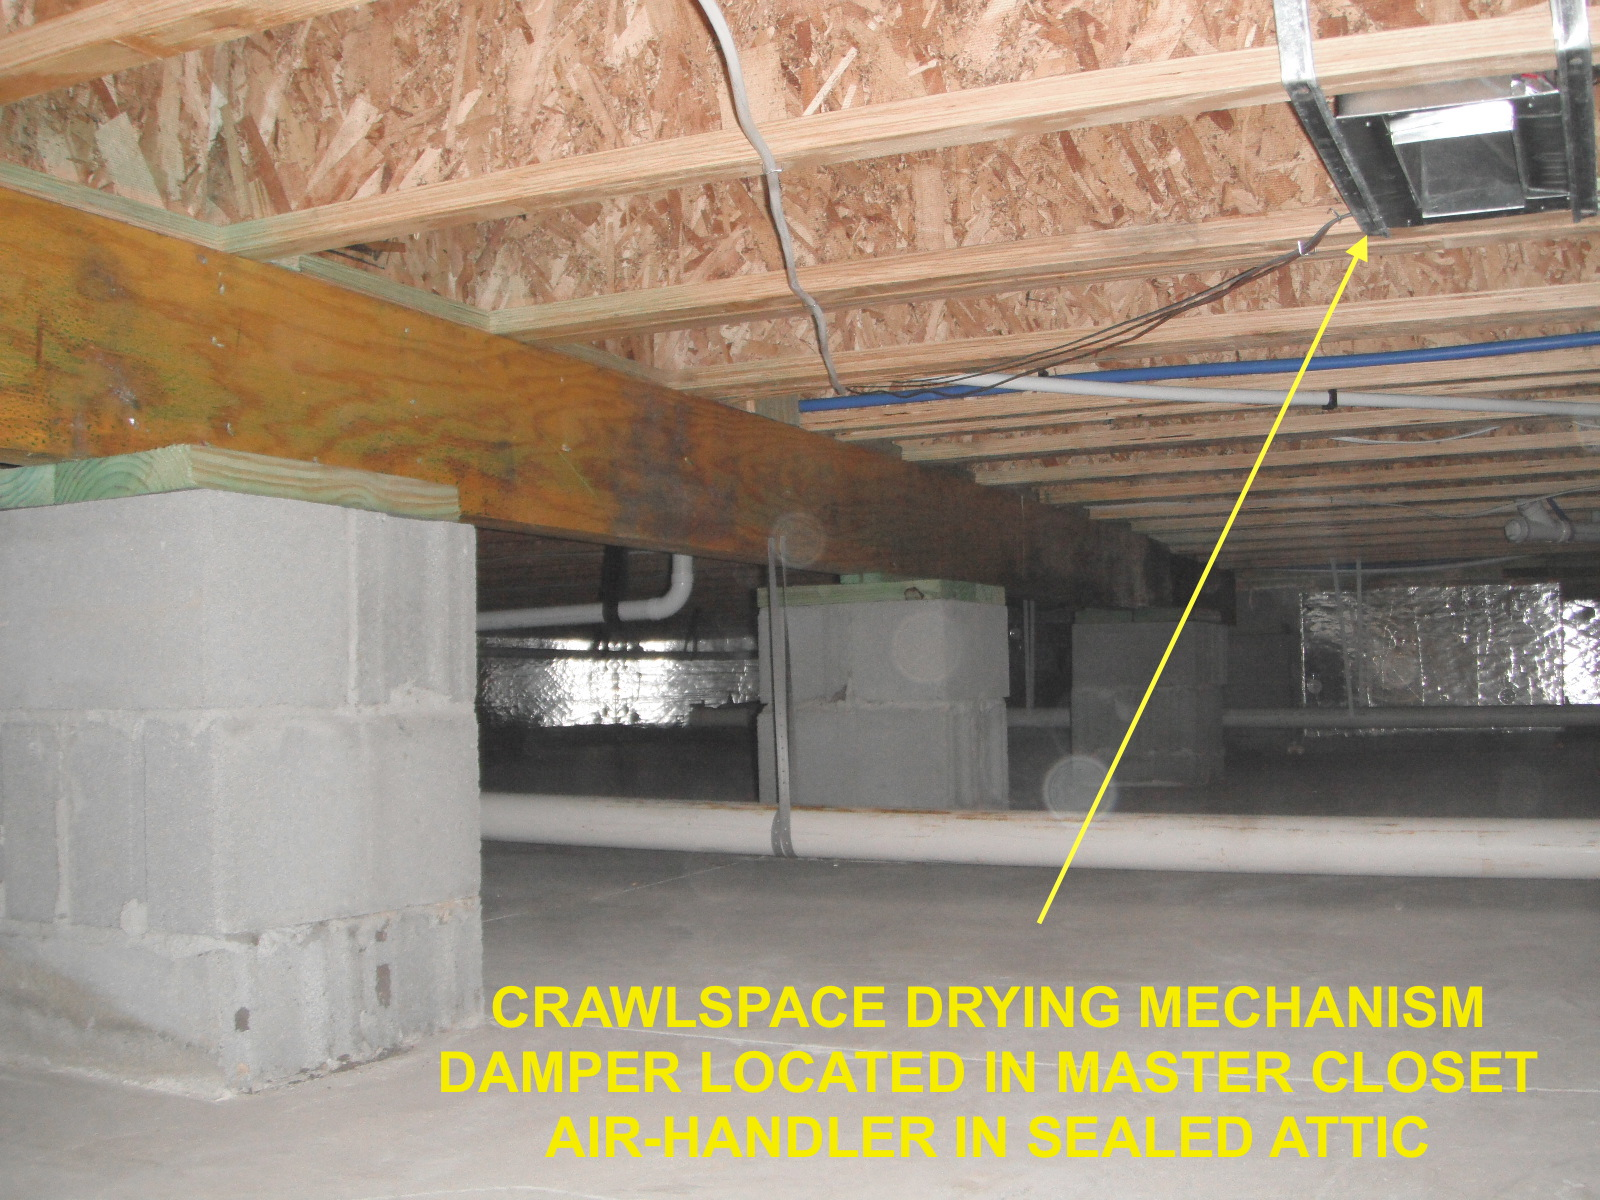 CRAWLSPACE DRYING MECHANISM via attic YellowTXT